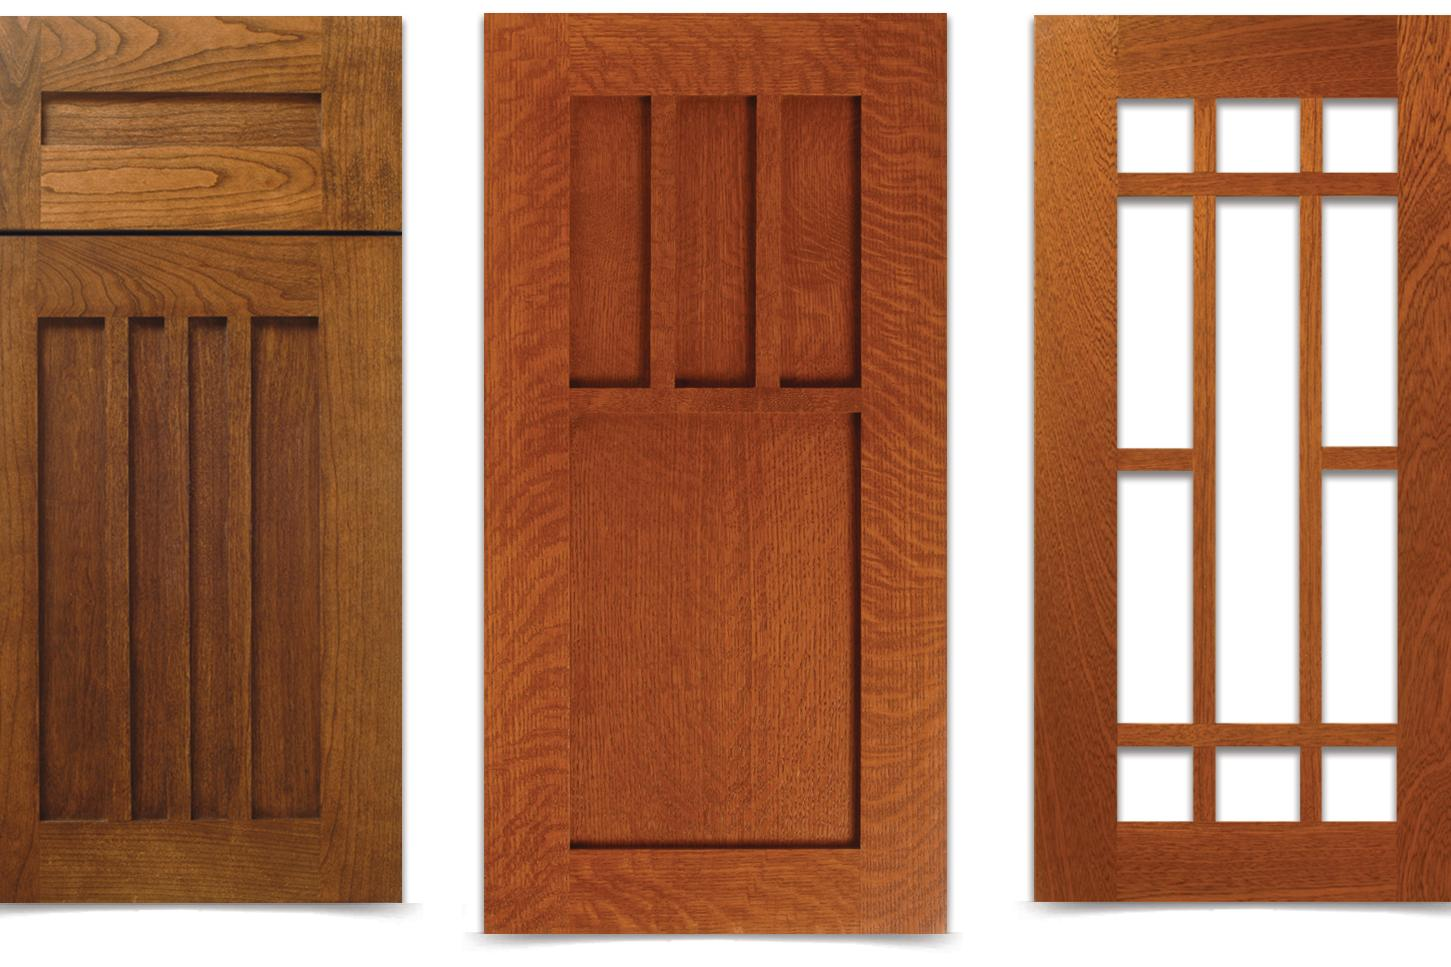 Endless Options: WalzCraft Custom Cabinet Doors | Remodeling | Cabinets,  Kitchen, Doors, Casework, WalzCraft